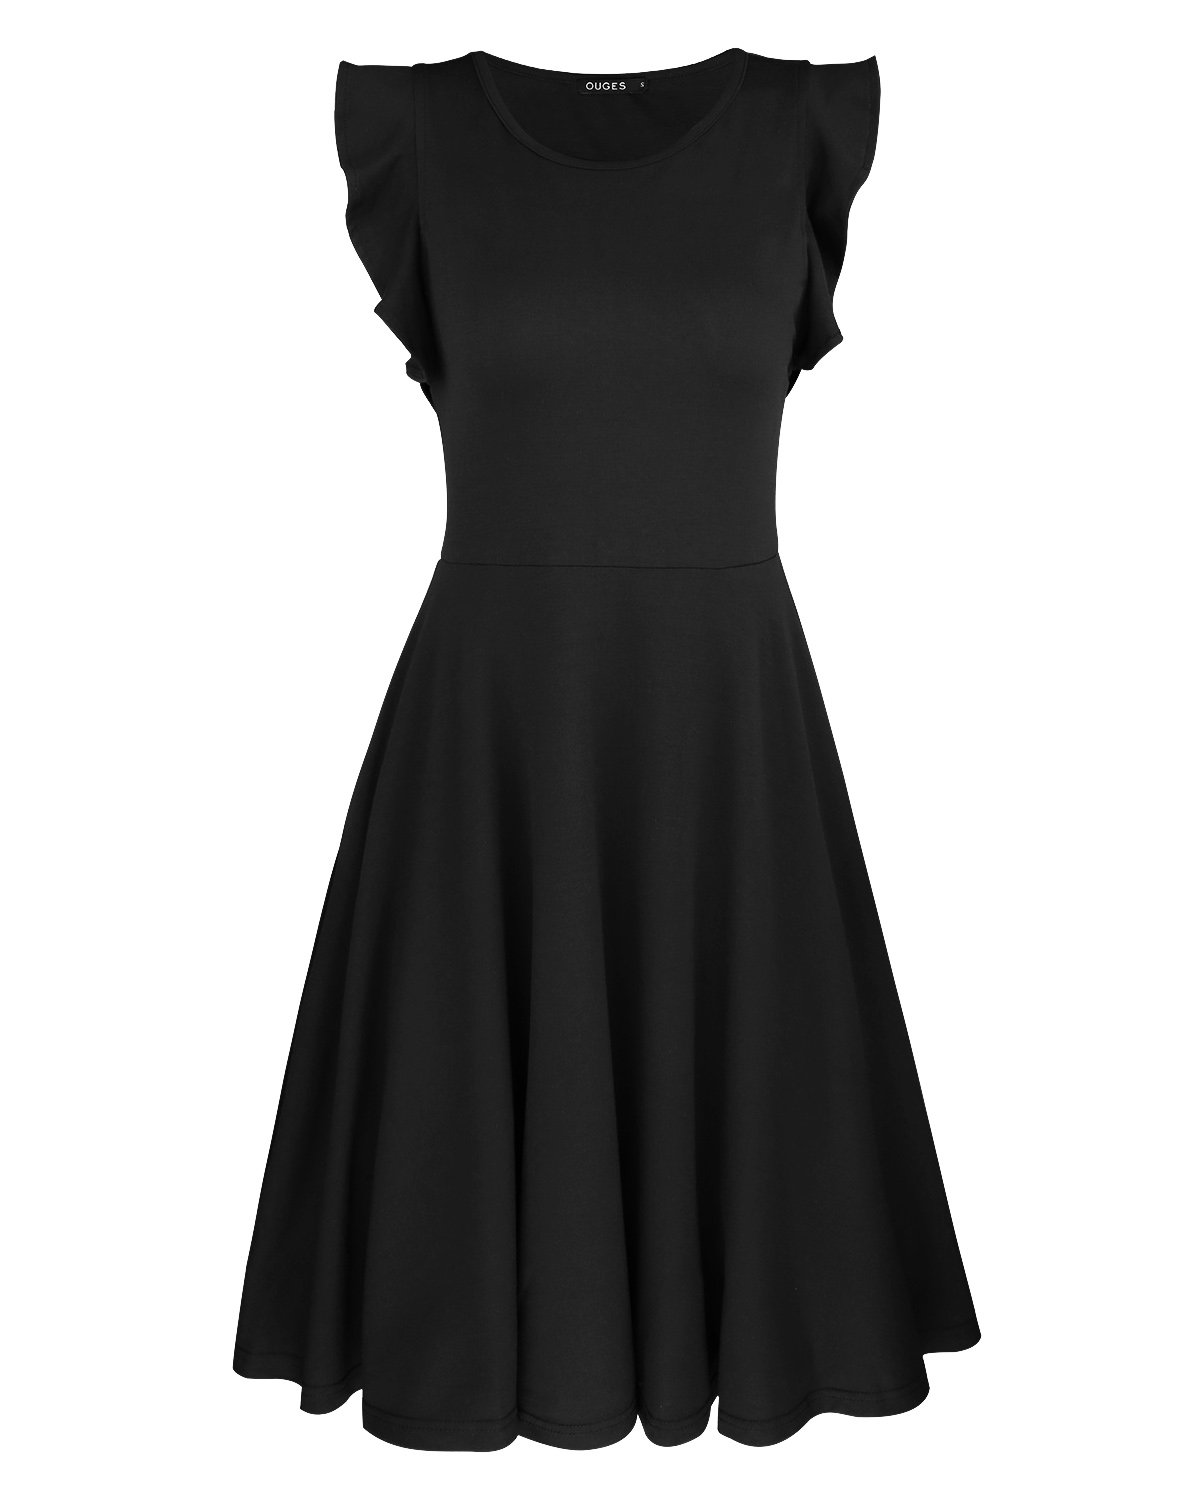 Available at Amazon: OUGES Women's Ruffles Cap Sleeve Casual Cotton Flare Dress